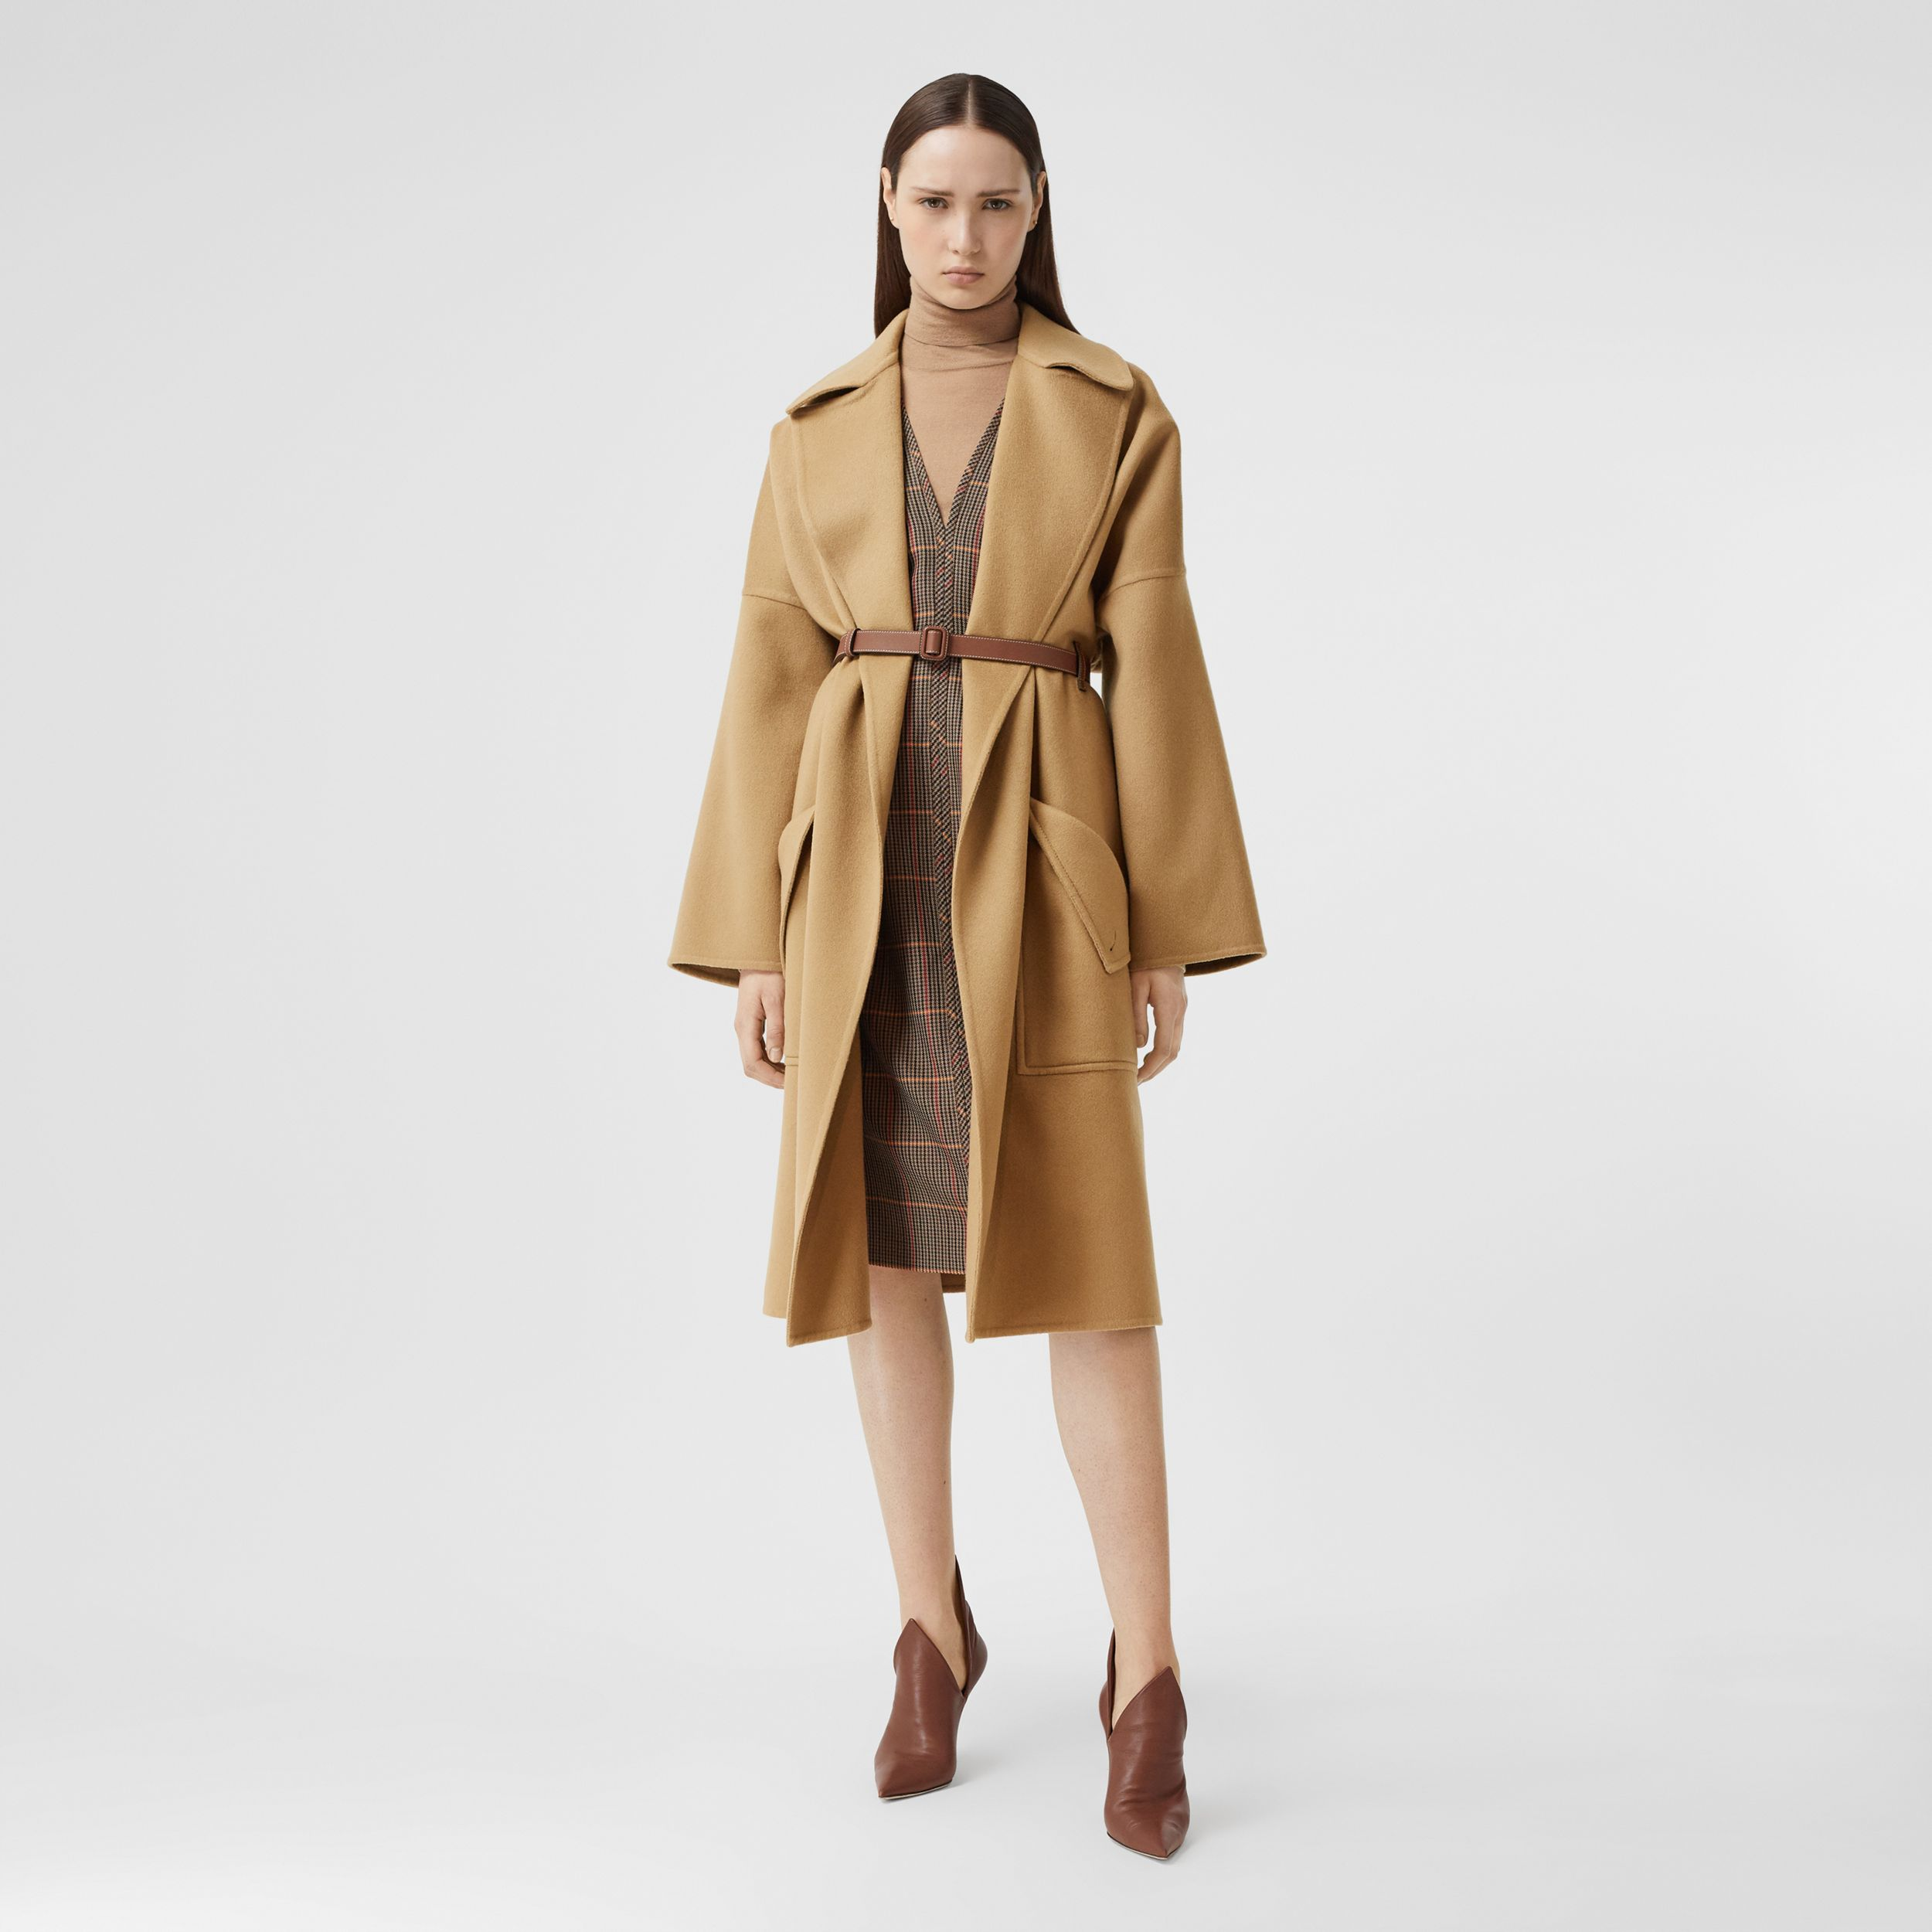 Pocket Detail Double-faced Cashmere Wrap Coat in Camel - Women | Burberry - 1